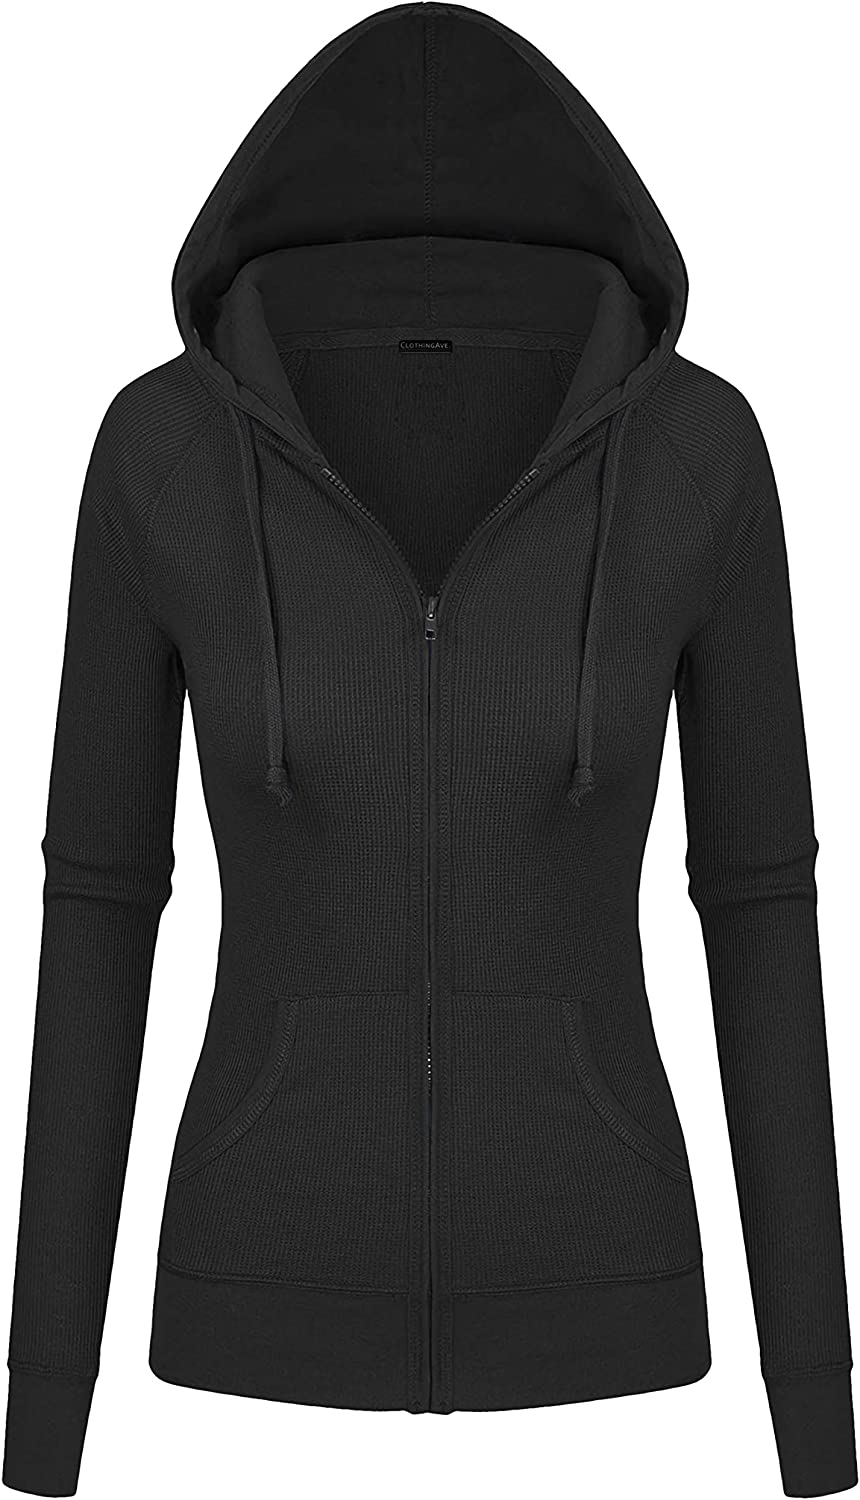 ClothingAve. Women's Active Thermal Zip Up Lightweight Hoodie Casual Warmup Jacket with Kangaroo Side Pockets